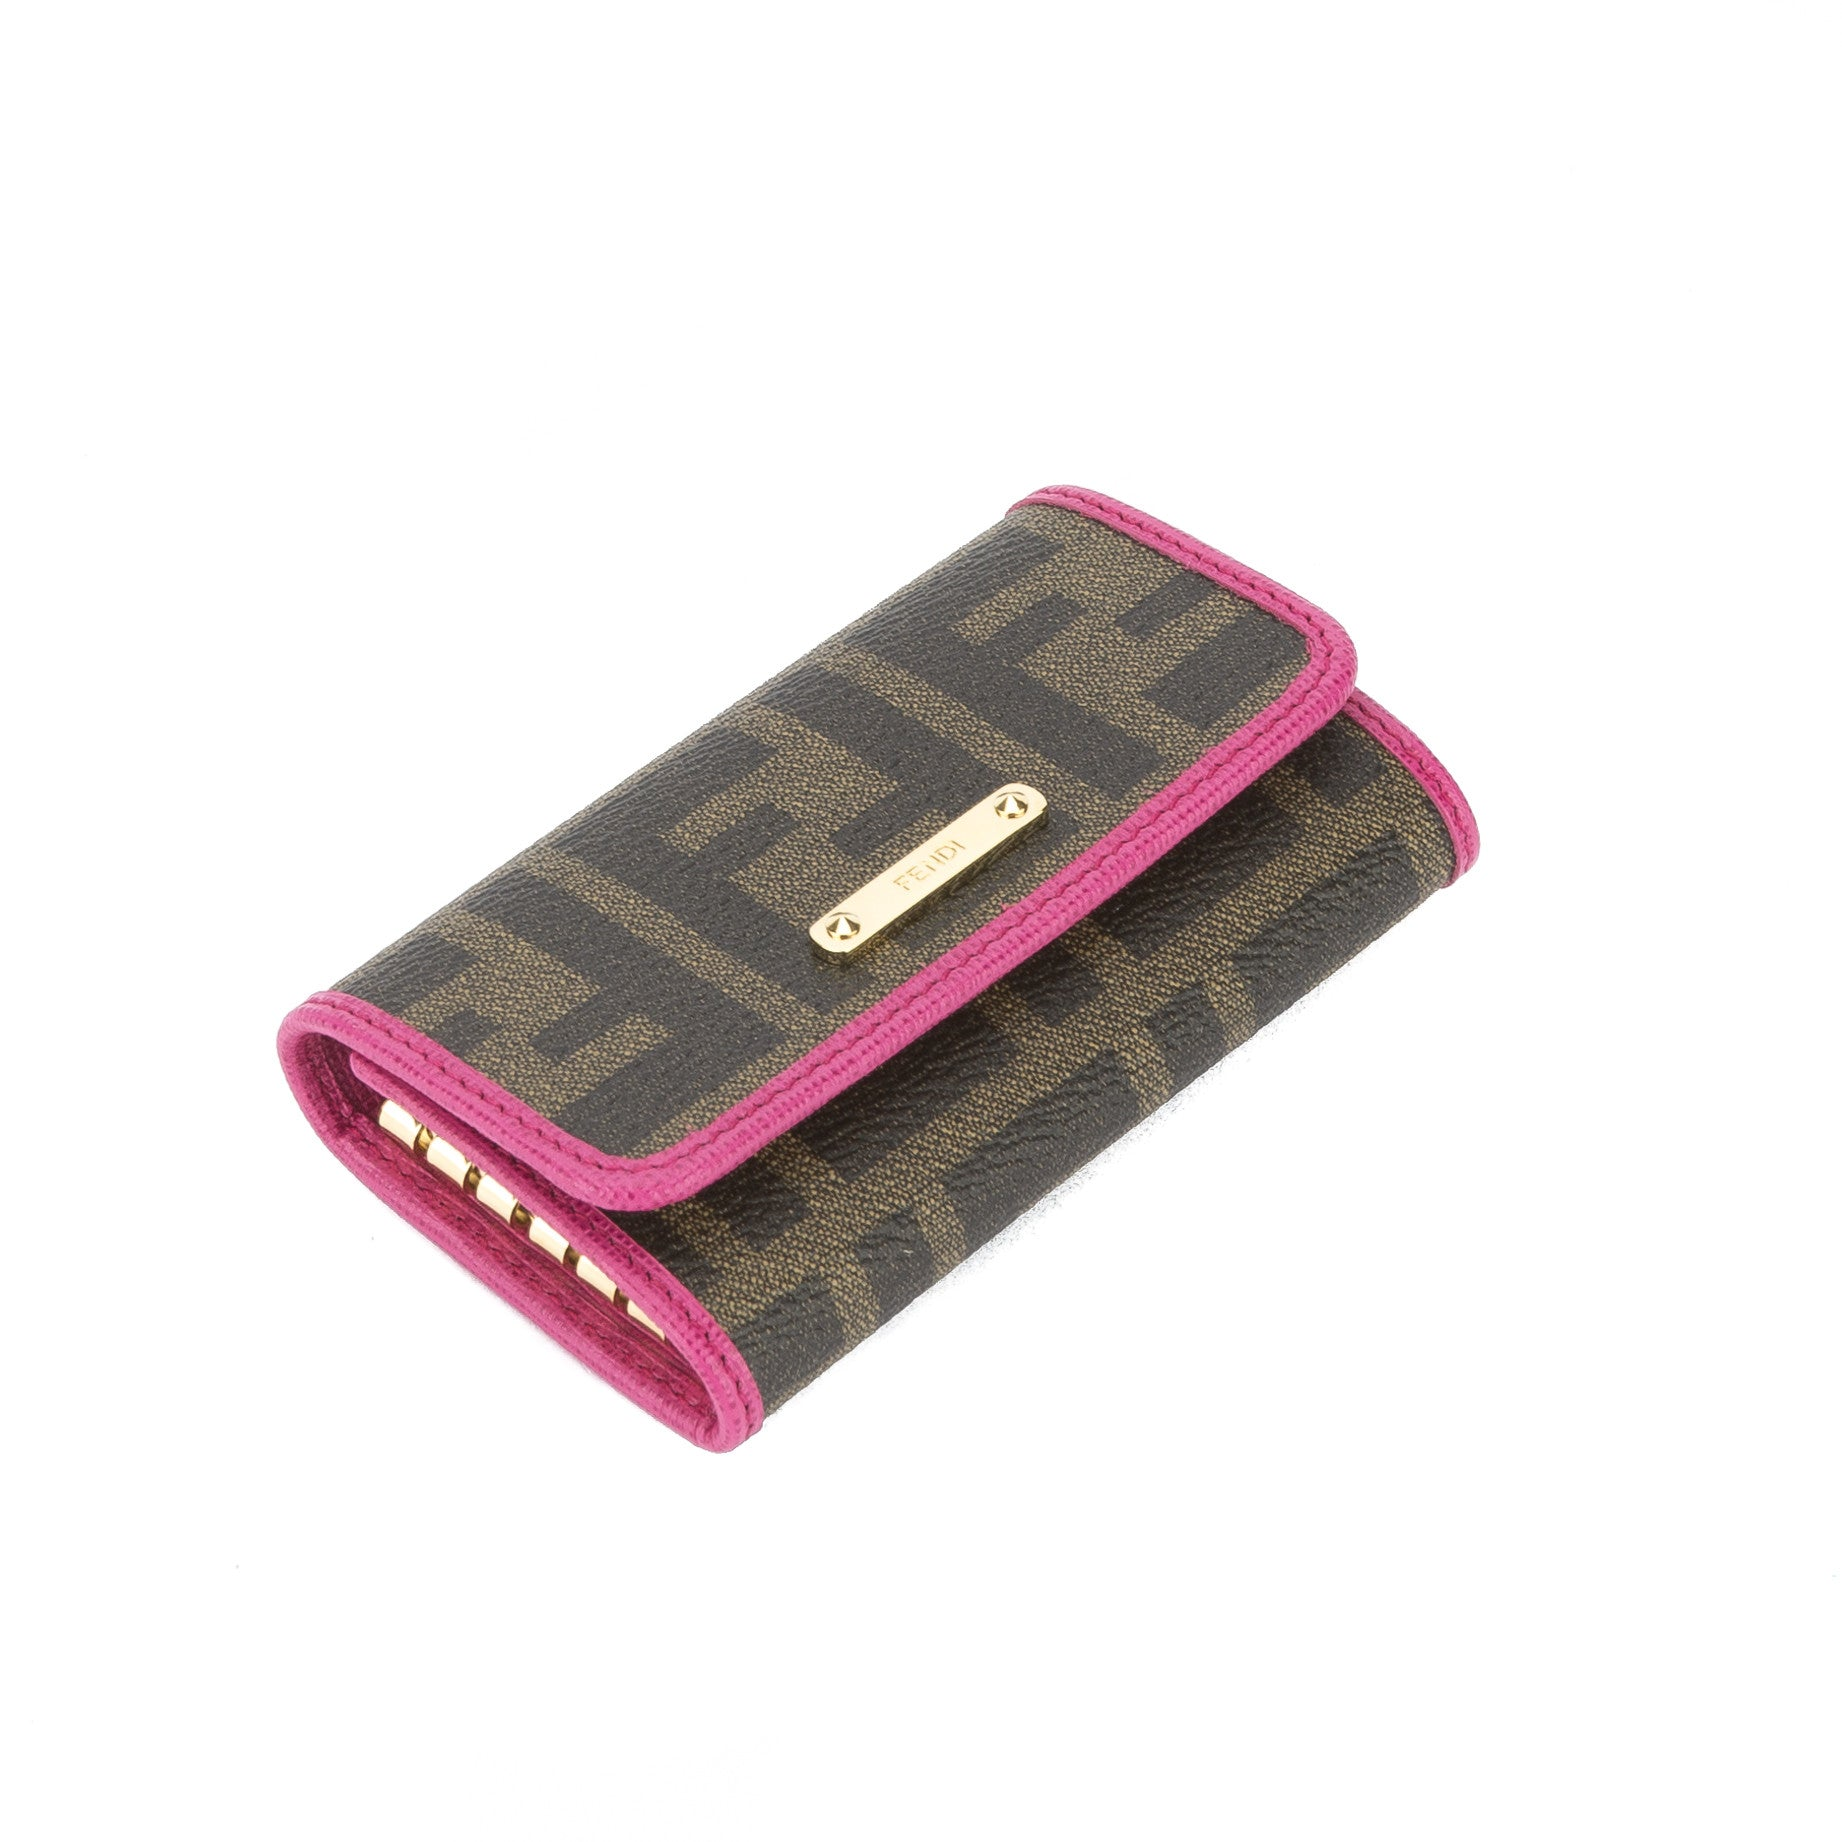 1a36385de22 Fendi Brown Jacquard Zucca 6 Key Holder (New with Tags) - 3037010 | LuxeDH